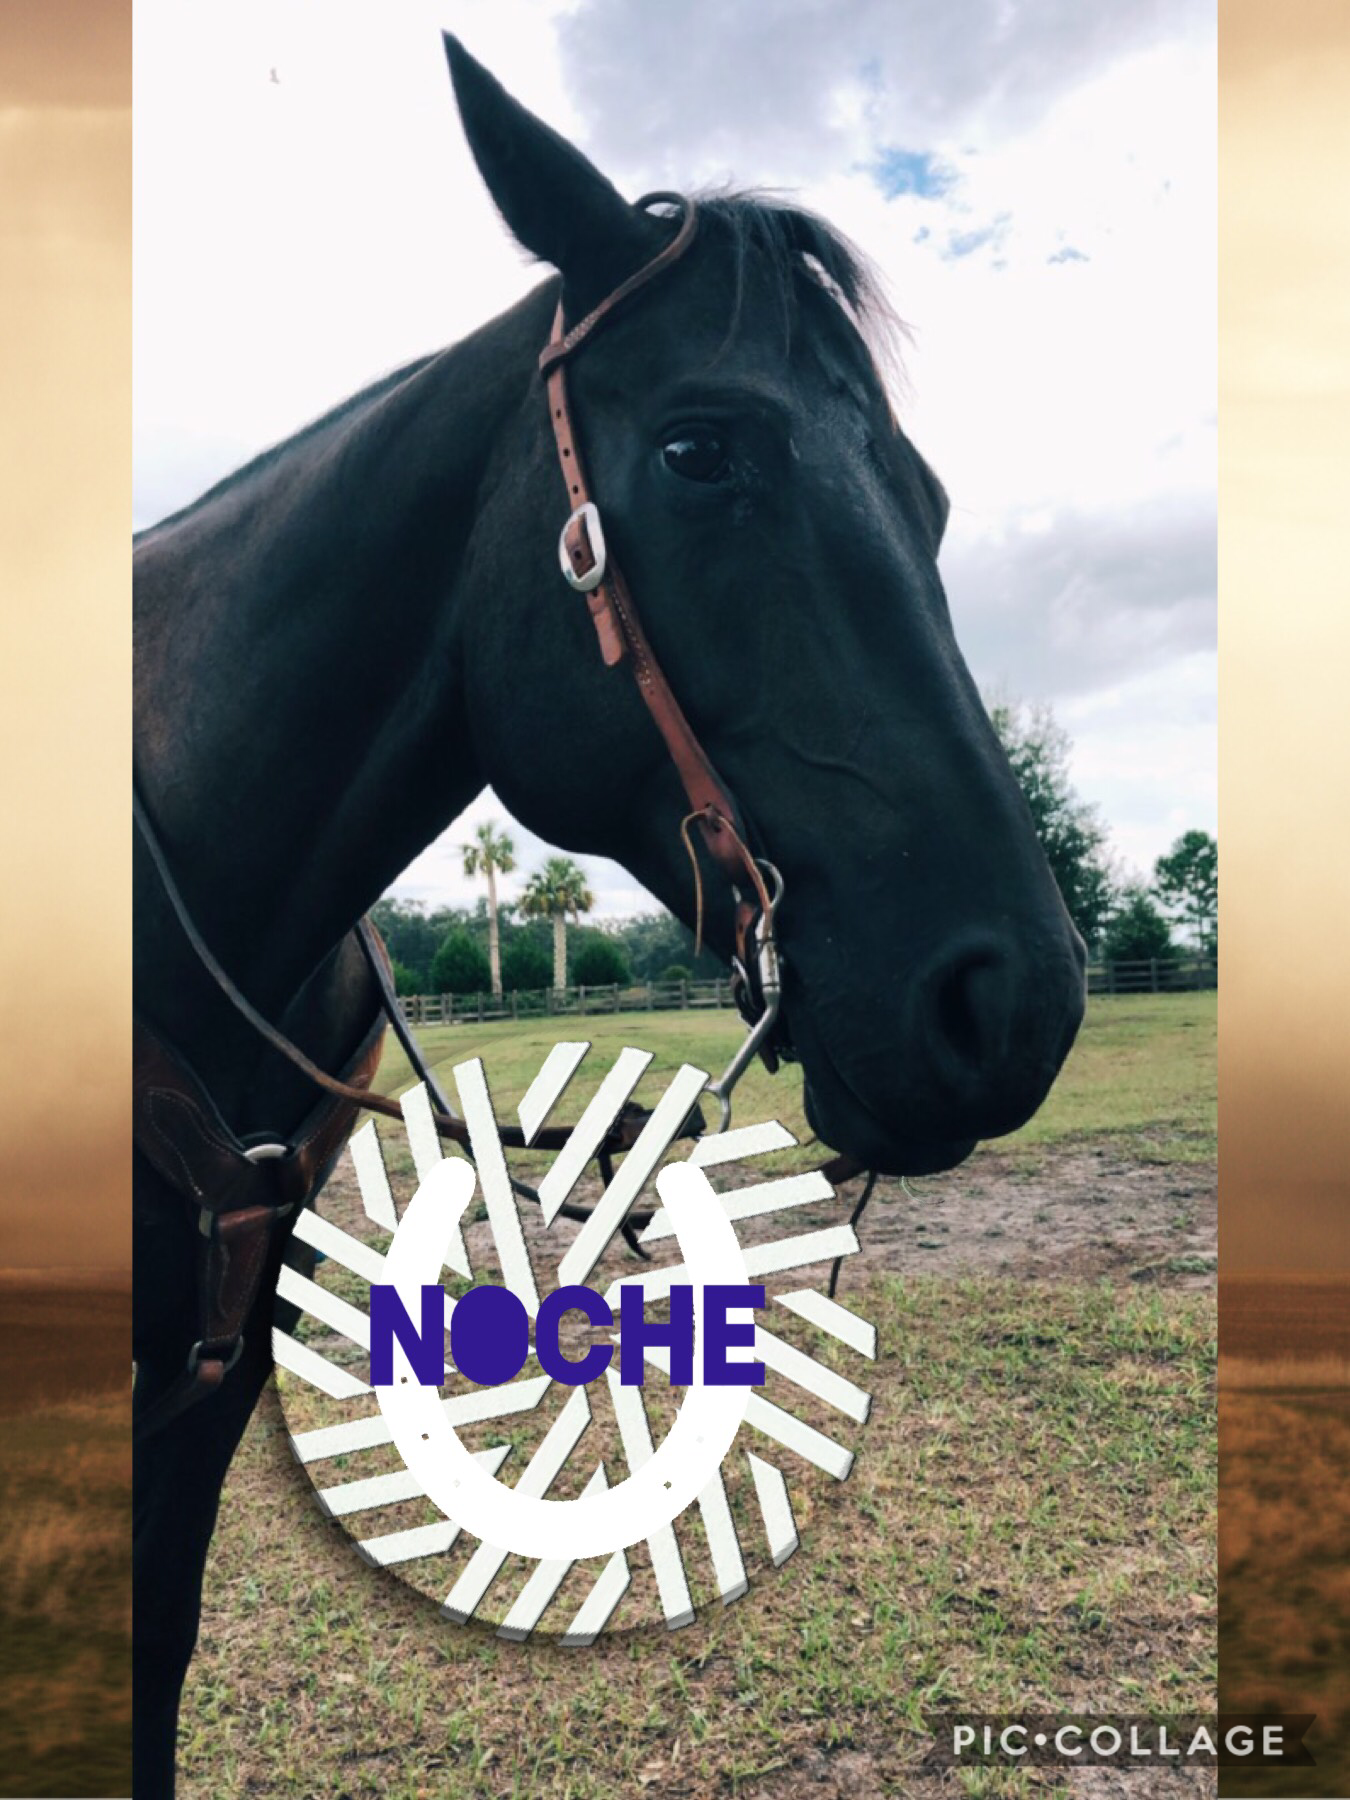 My other horse Noche